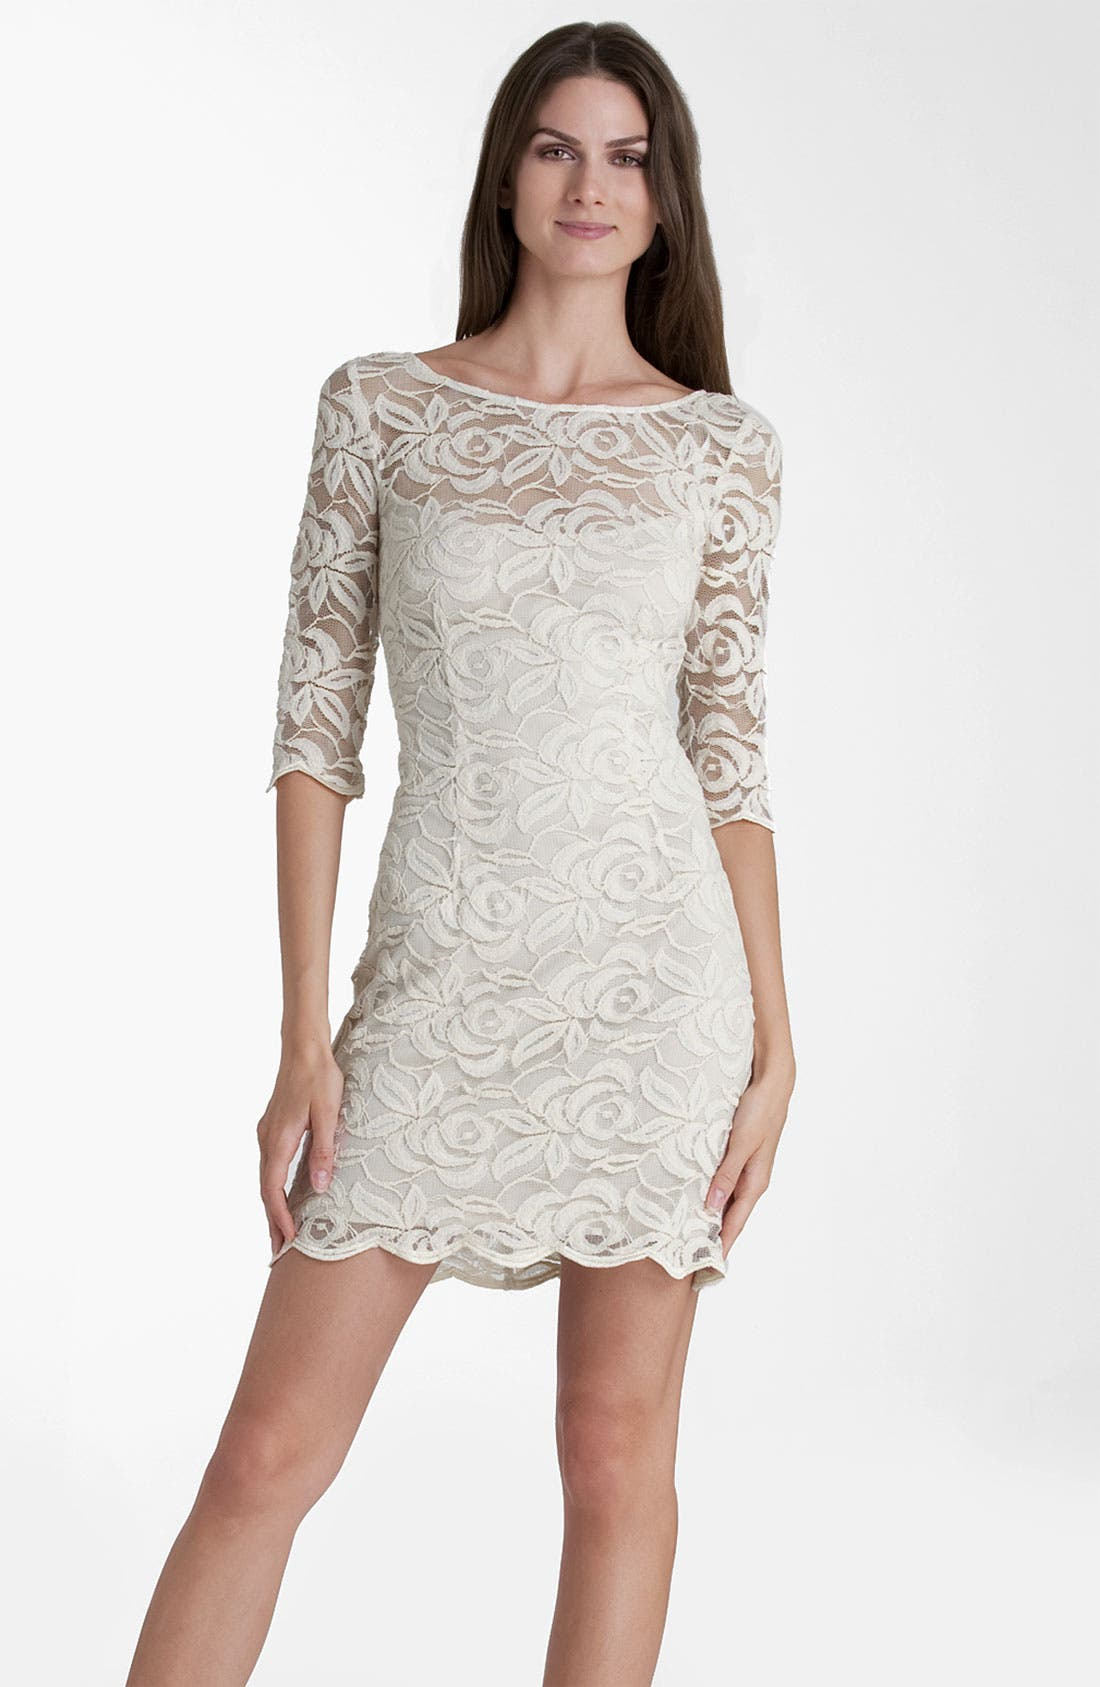 Alternate Image 1 Selected - JS Collections Boatneck Lace Overlay Sheath Dress (Petite)